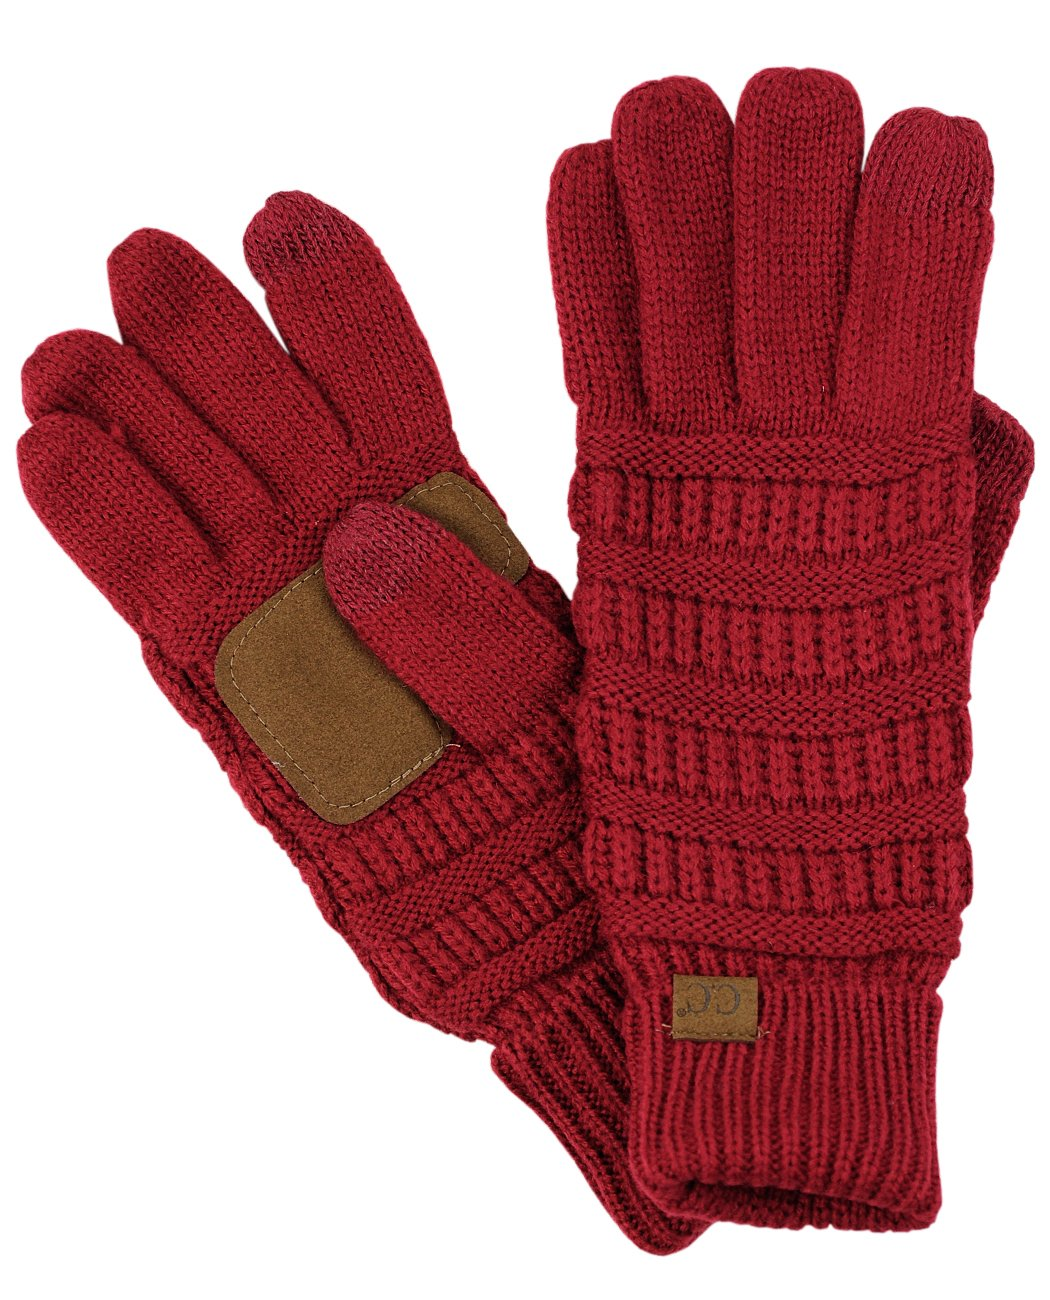 C.C Unisex Cable Knit Winter Warm Anti-Slip Touchscreen Texting Gloves